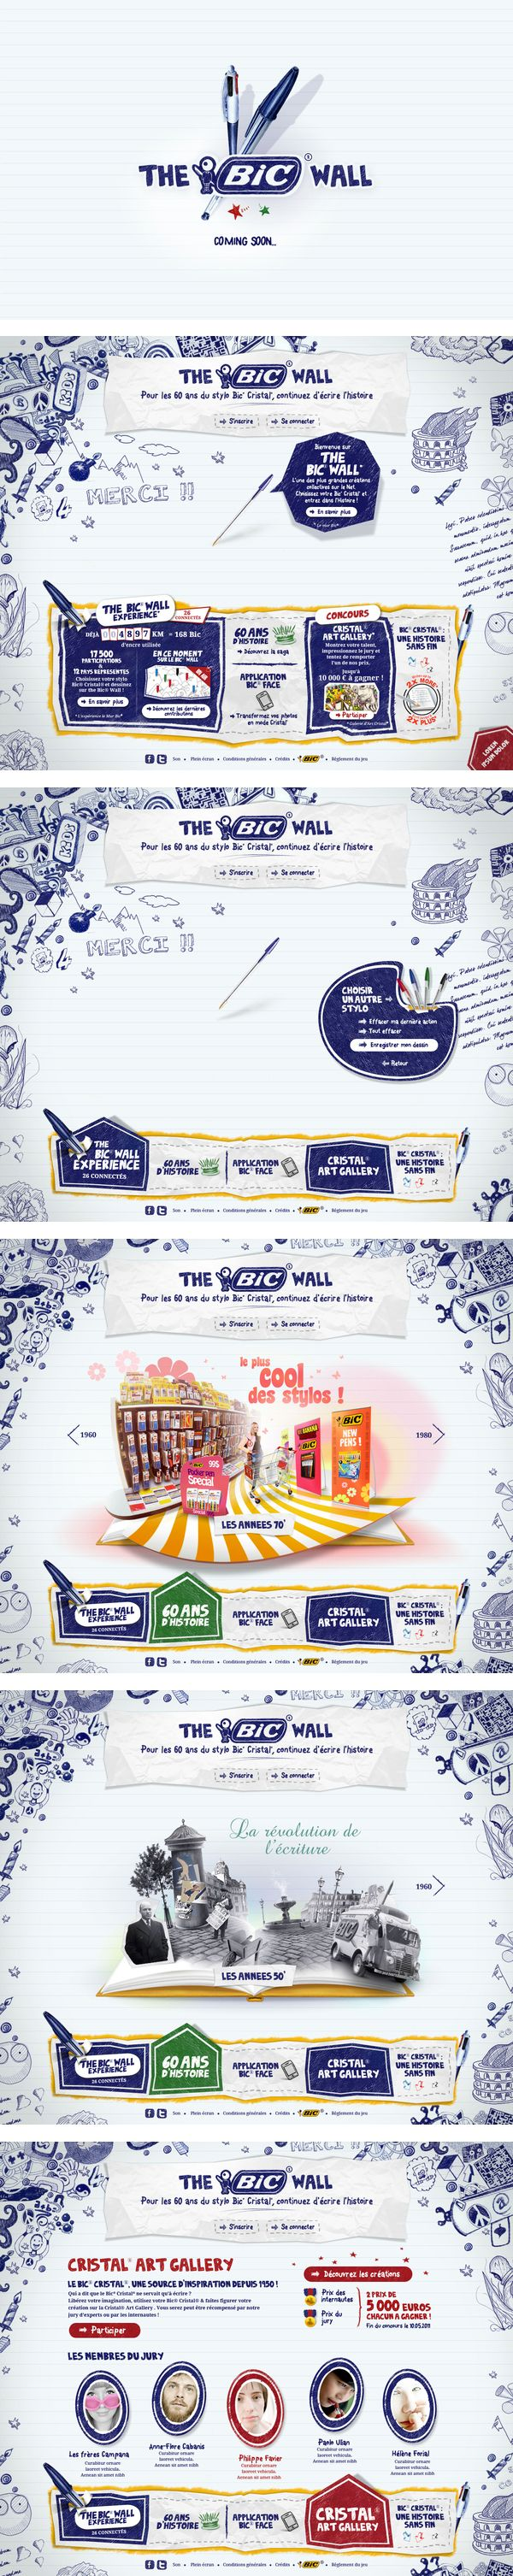 The BIC Wall | #webdesign #it #web #design #layout #userinterface #website #webdesign < repinned by www.BlickeDeeler.de | Take a look at www.WebsiteDesign-Hamburg.de